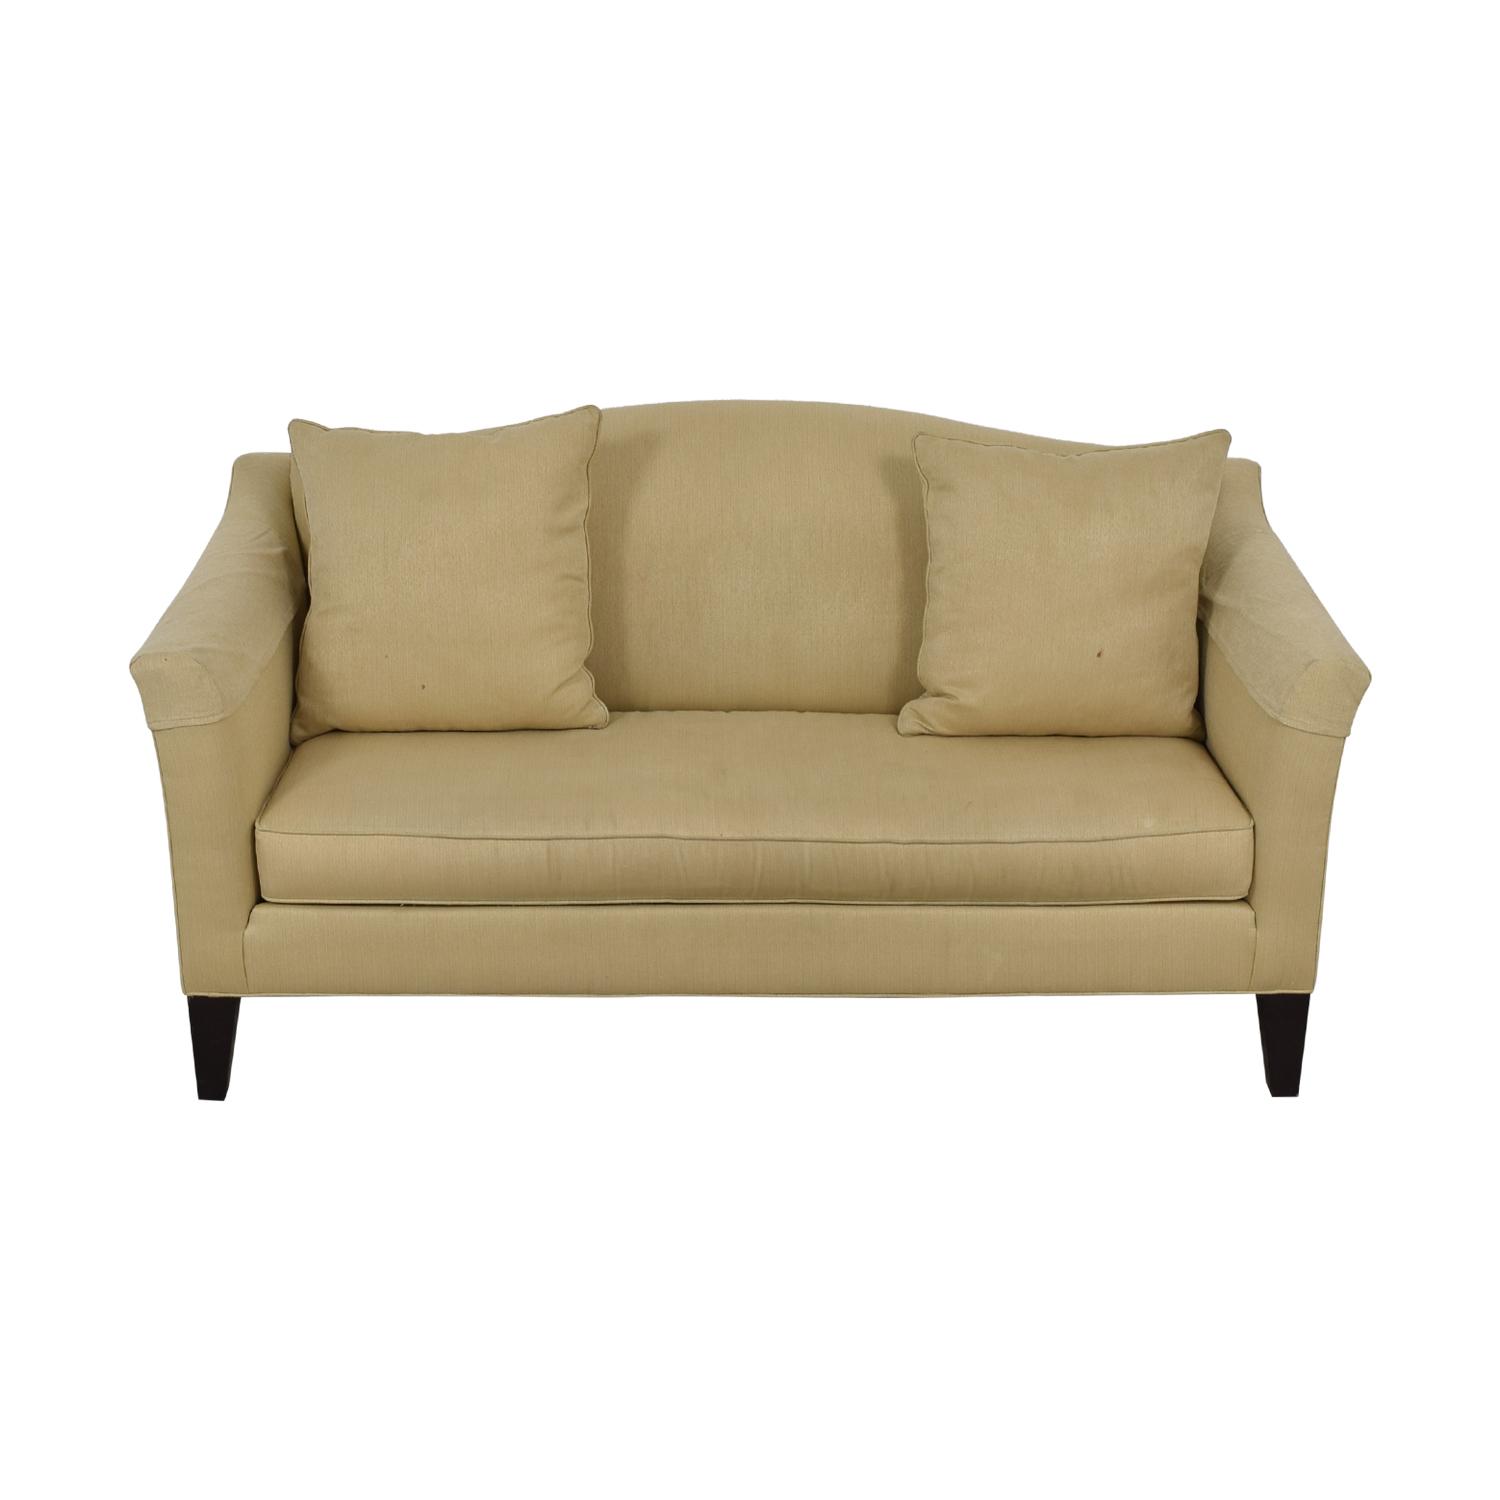 90% Off – Ethan Allen Ethan Allen Hartwell Camel Single Pertaining To Ethan Allen Sofas And Chairs (View 10 of 15)